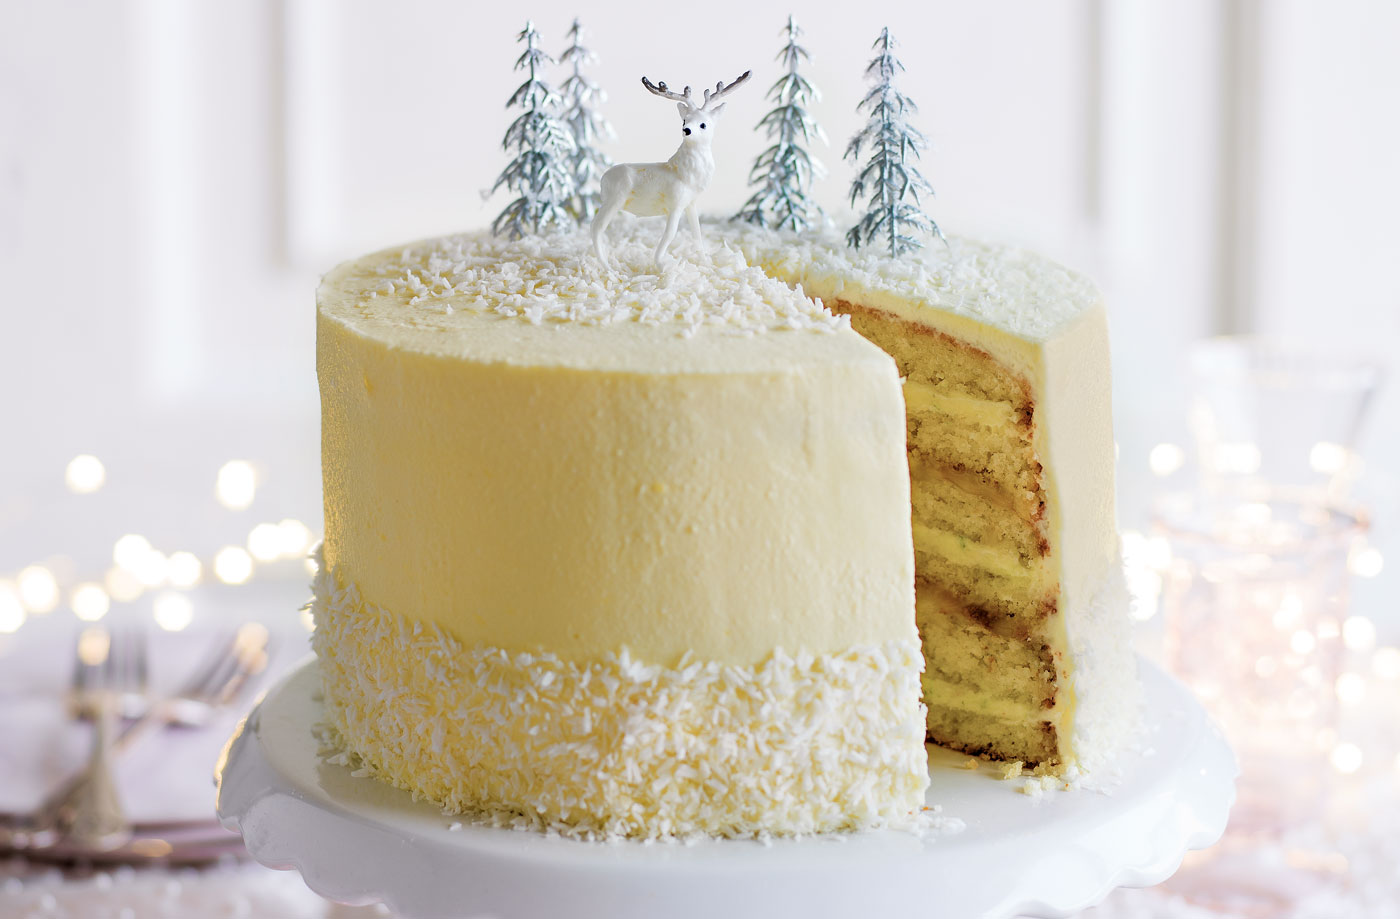 Recipes For Lemon Cake With Coconut